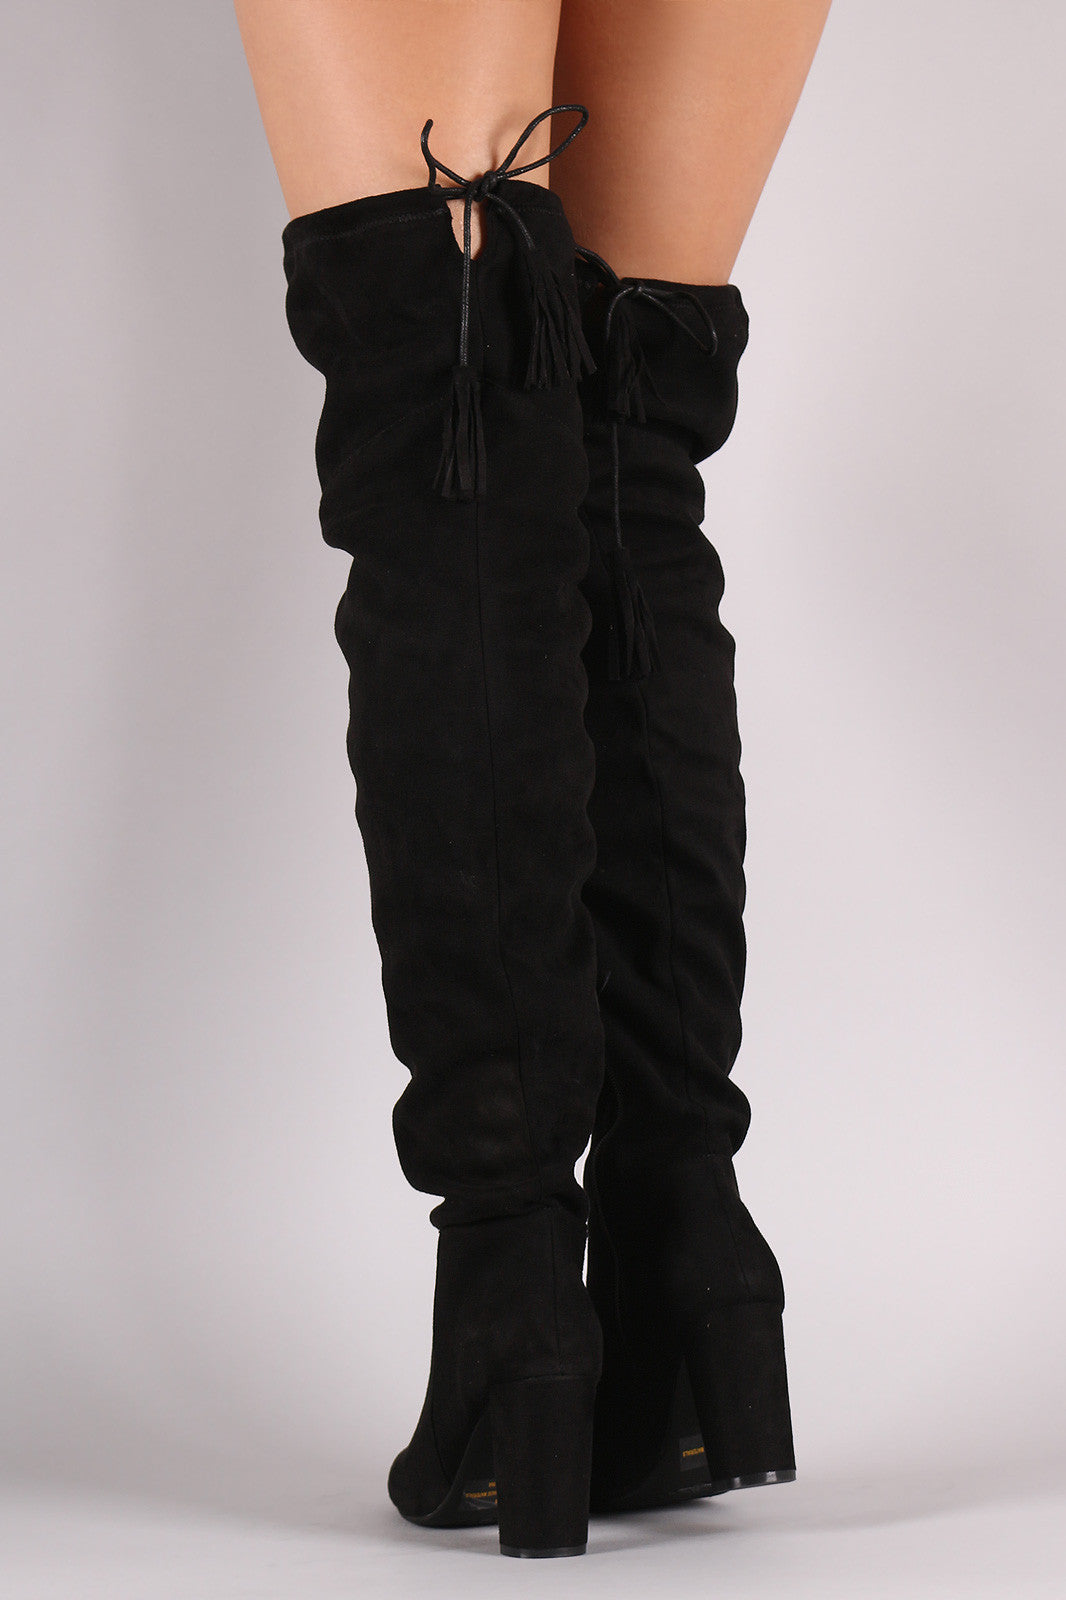 Suede Tassel Drawstring Chunky Heeled Over-The-Knee Boots - Thick 'N' Curvy Shop - 4